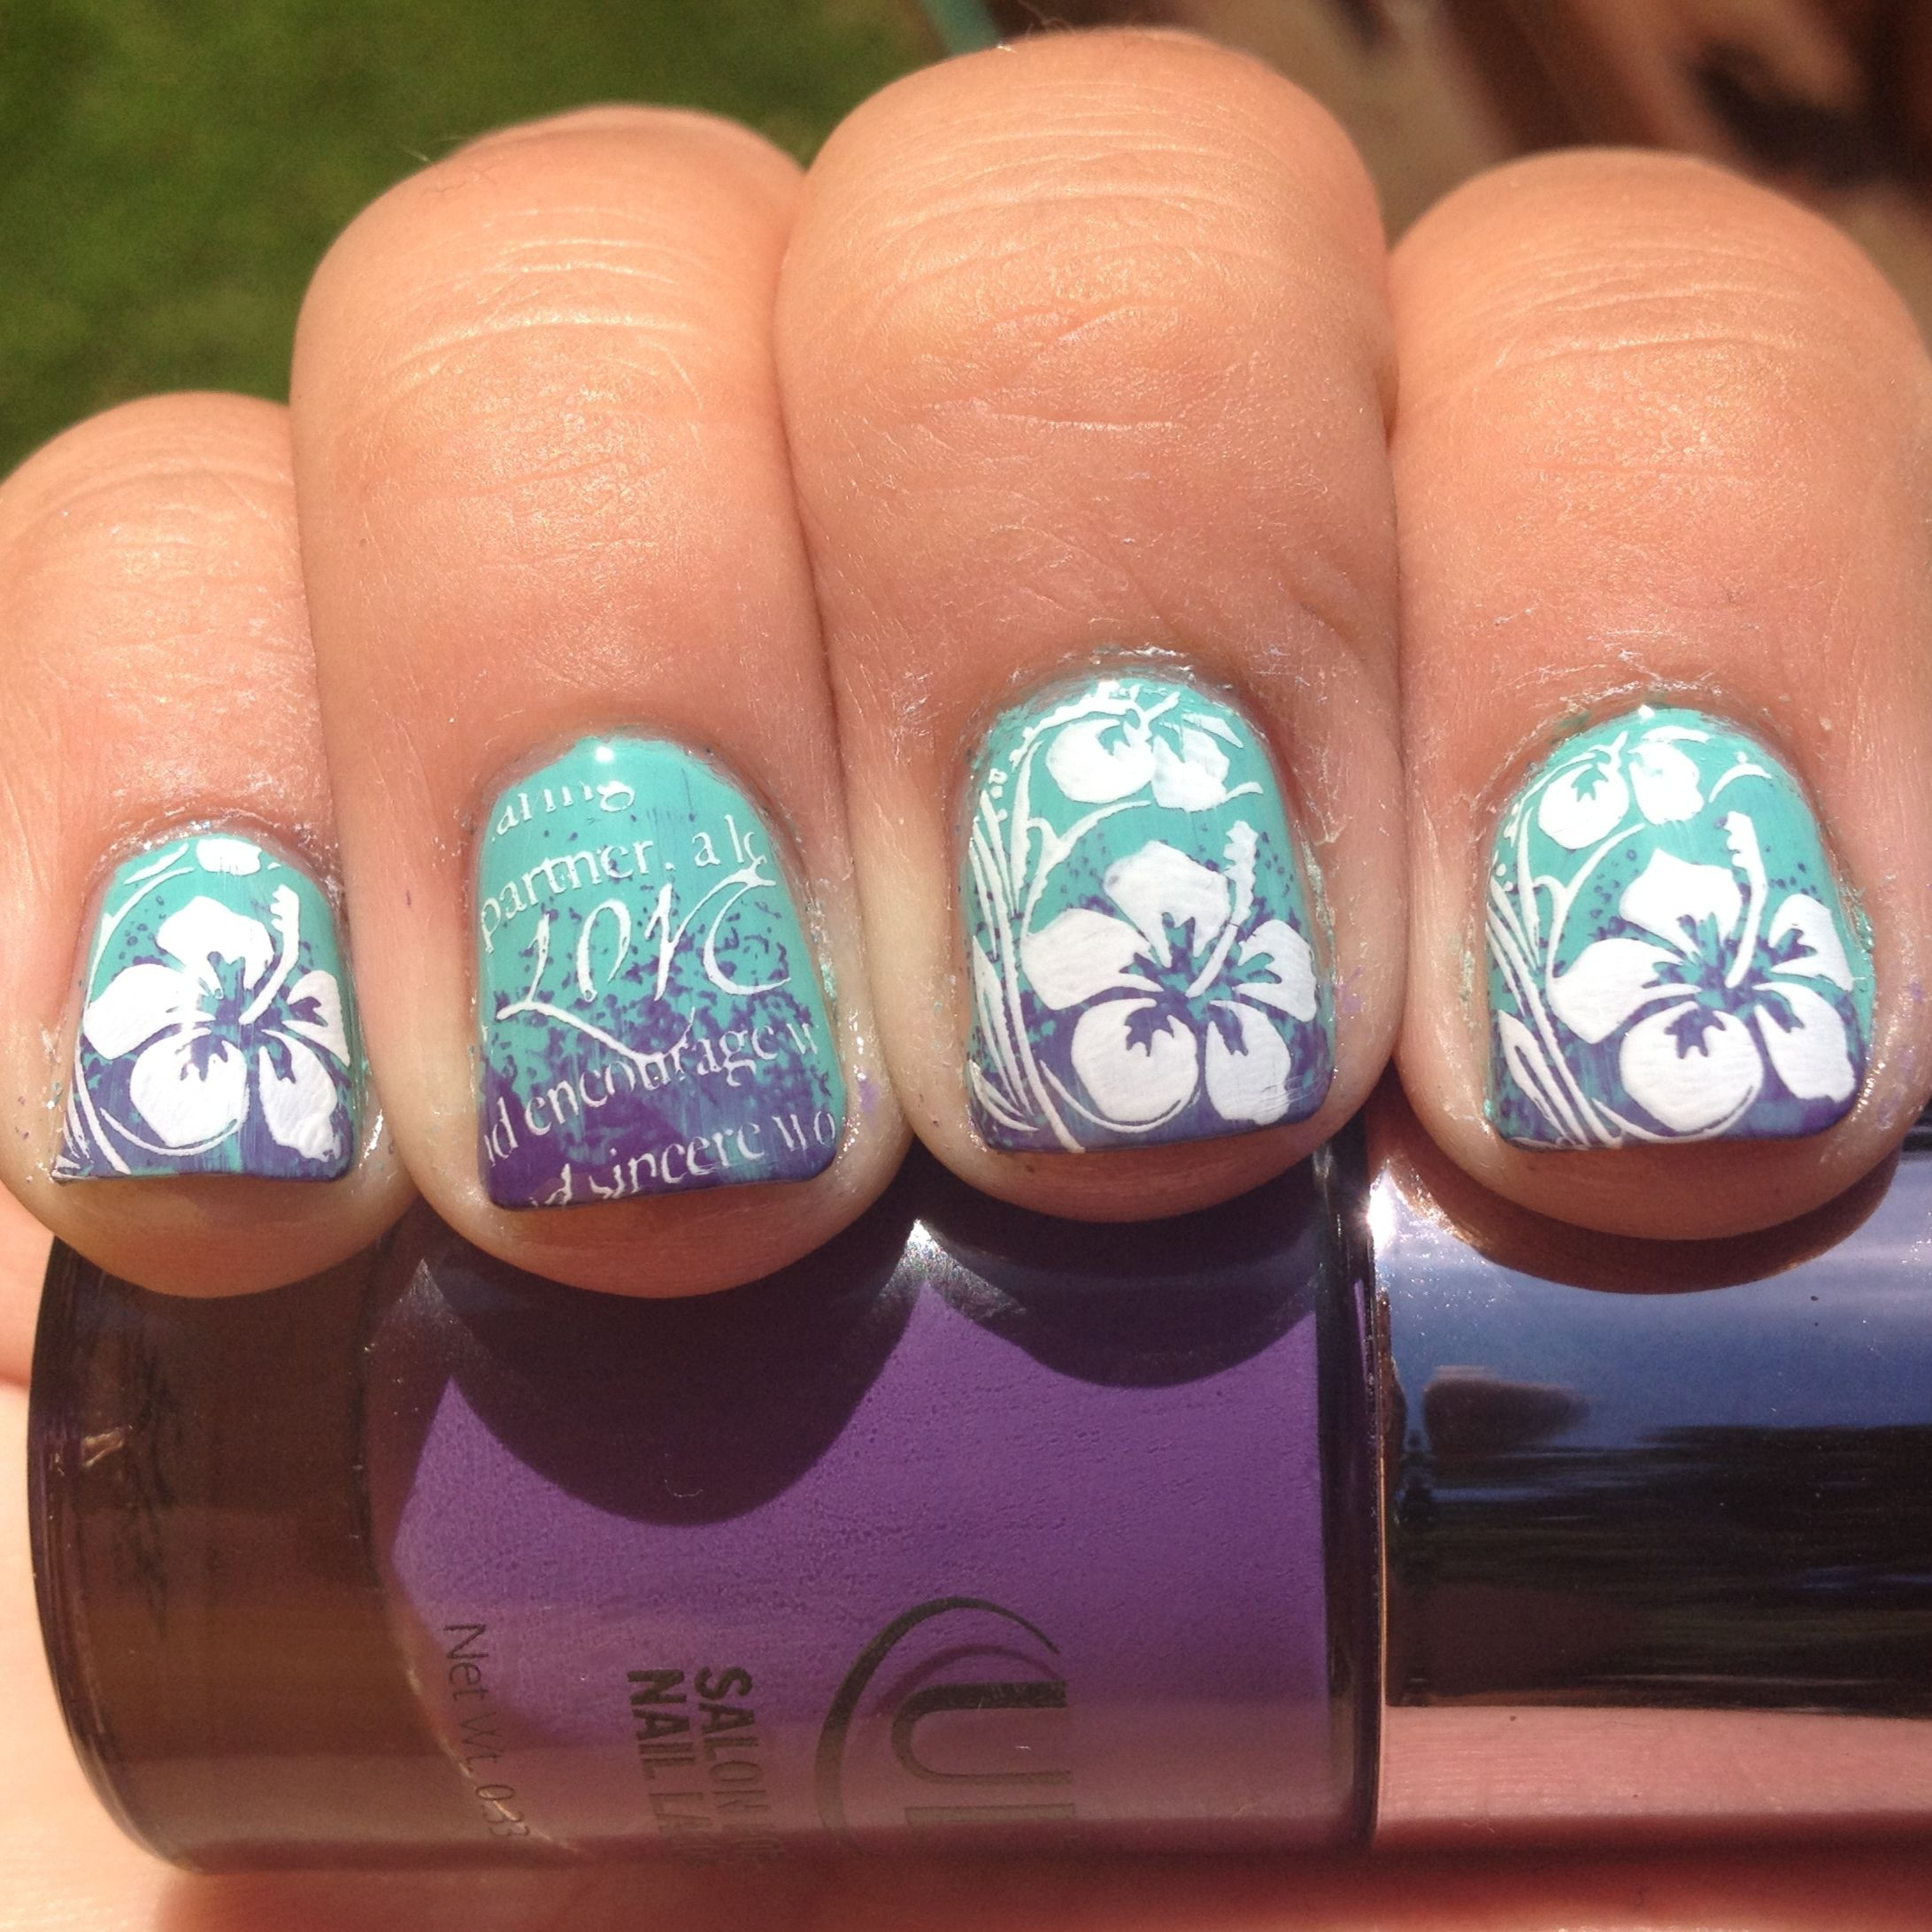 Nail Hawaiian Flowers Here Comes The Bride With Some Awesome Nails